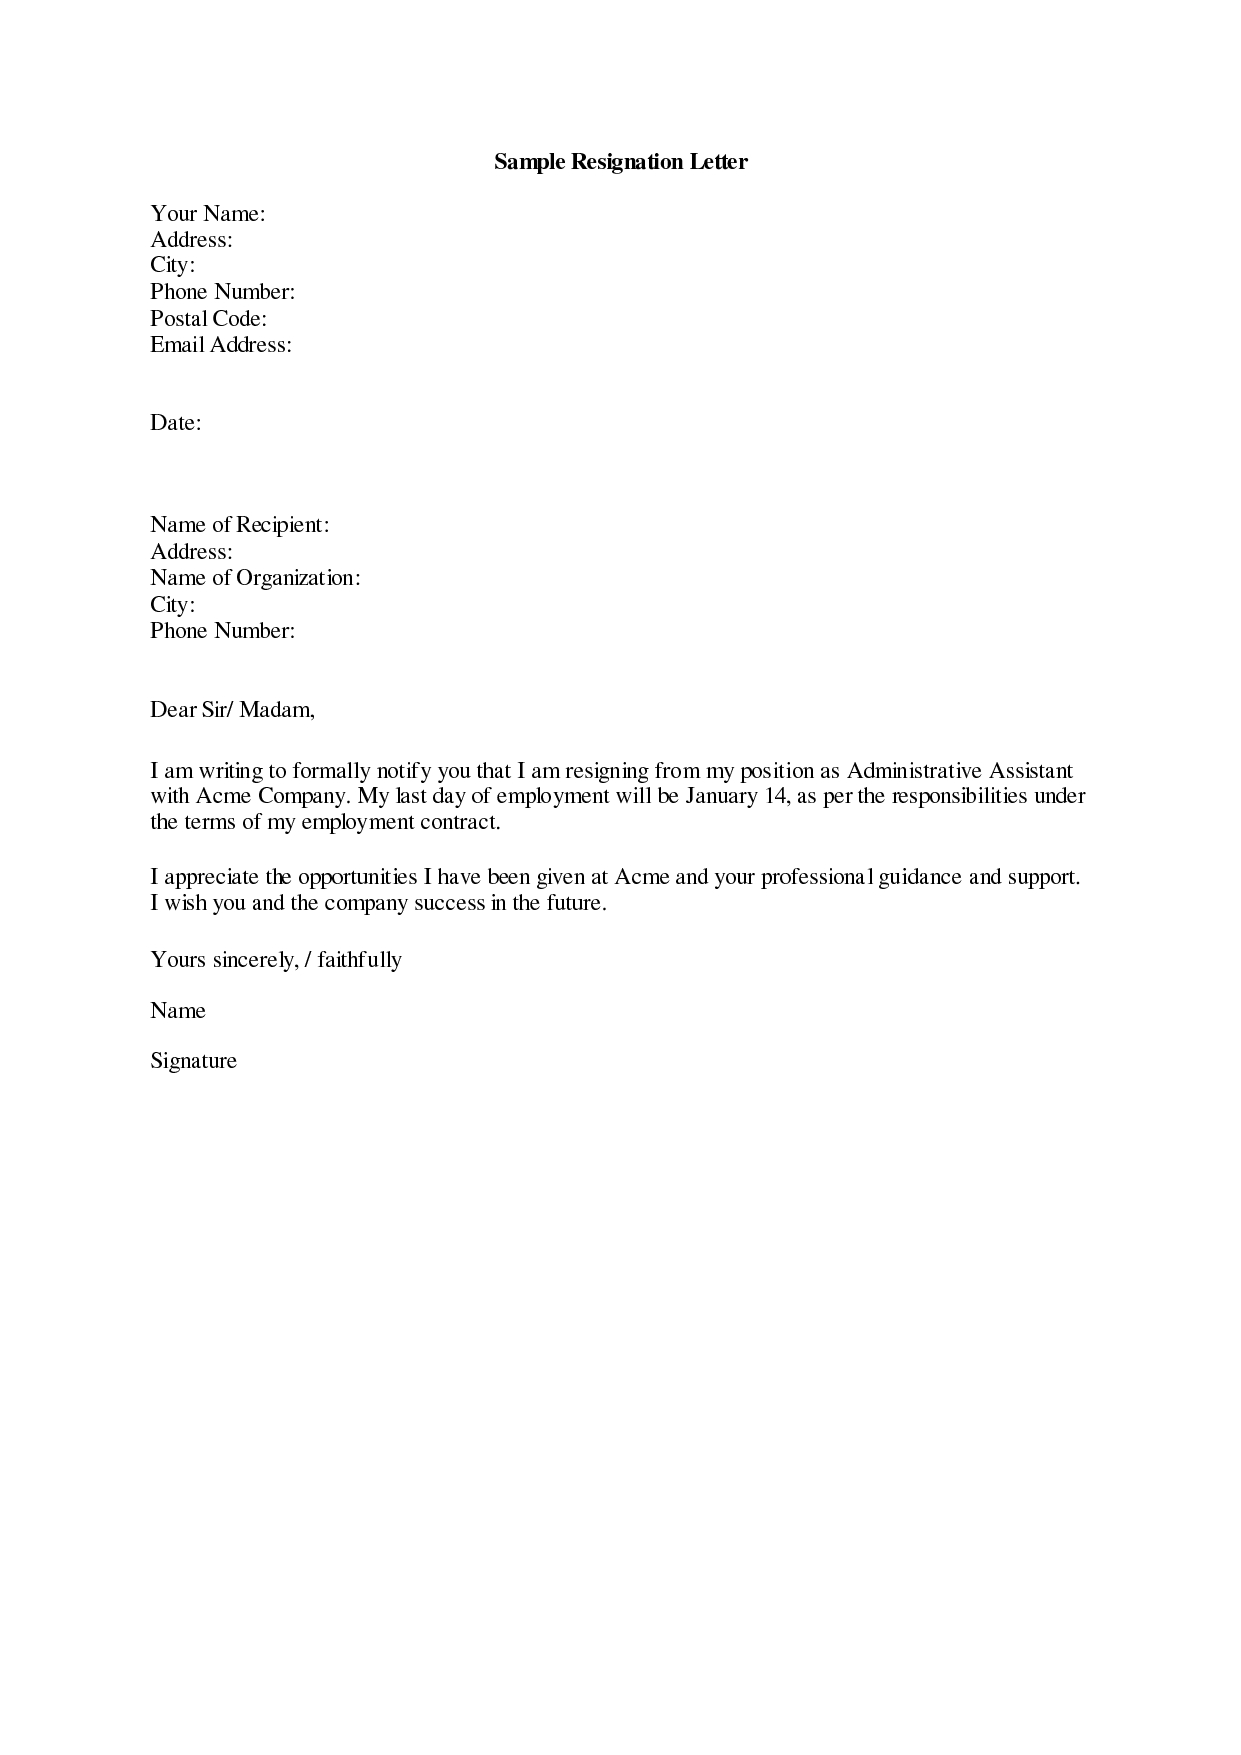 Resignation Letter Template Free - Resignation Letter Sample 19 Letter Of Resignation